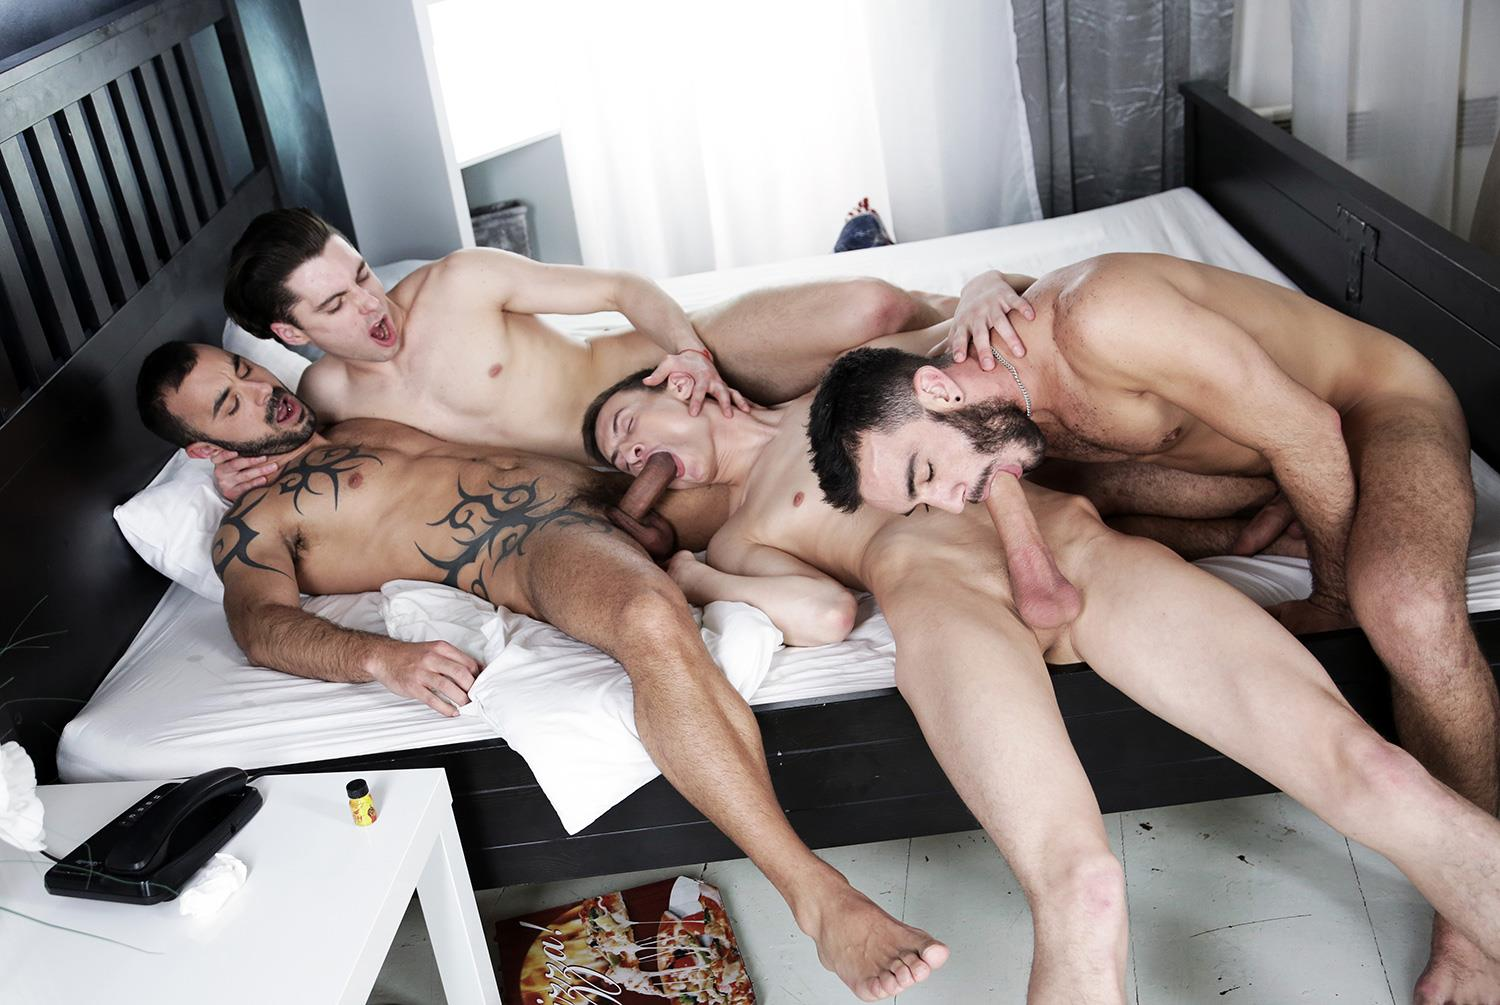 gay blow job double penetration